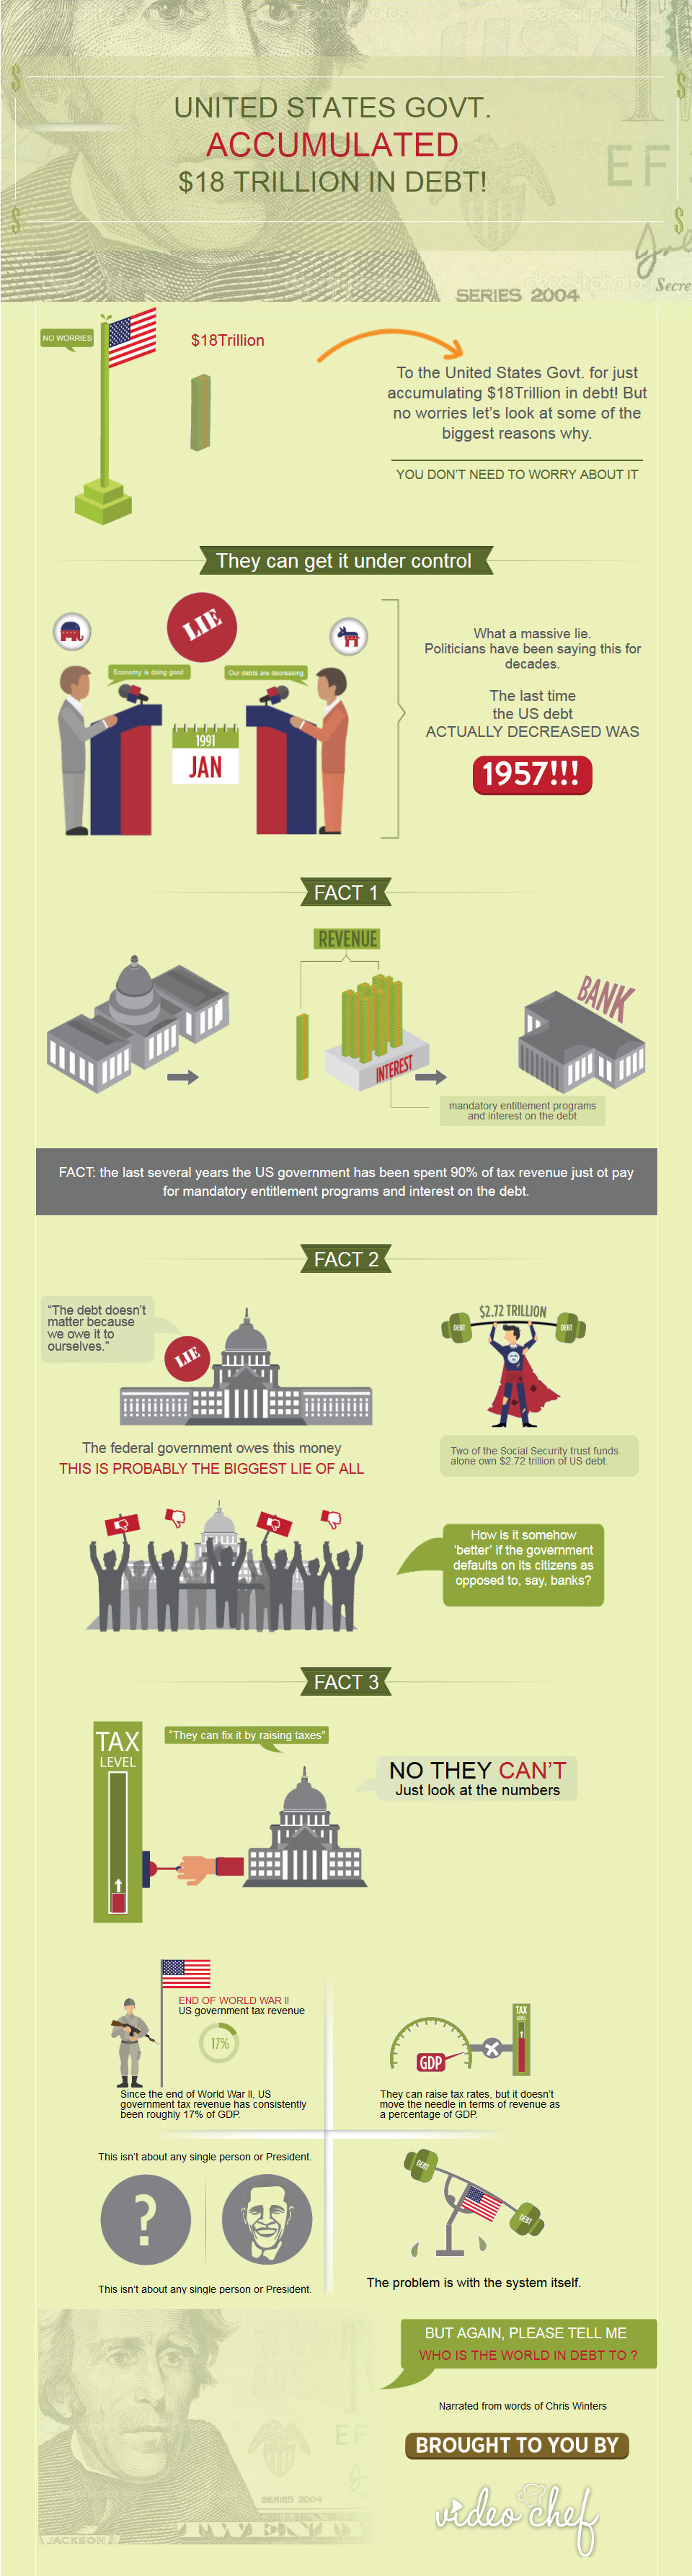 The United States' $18 Trillion Debt [Infographic] | Daily Infographic